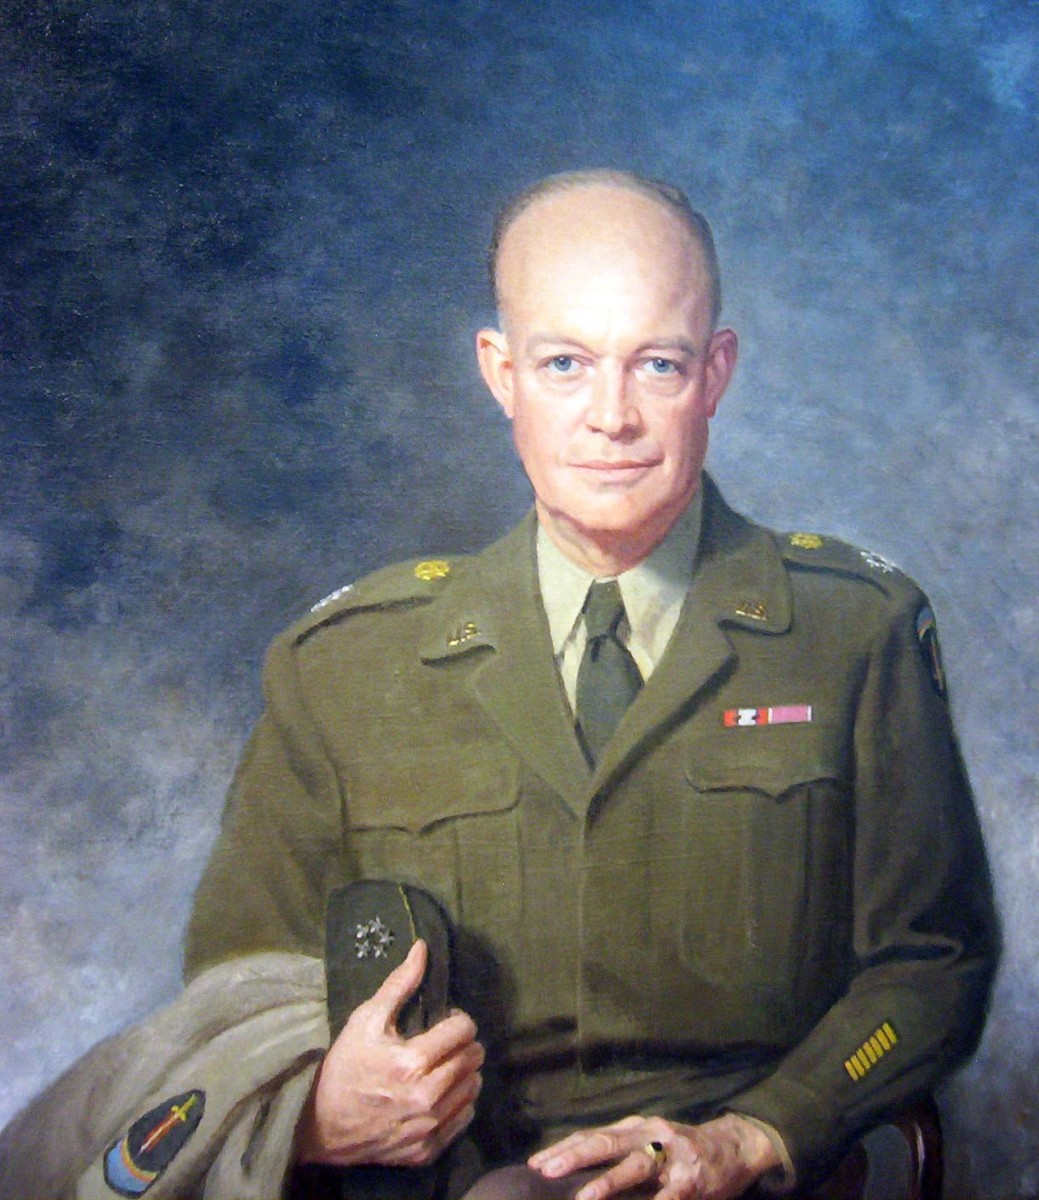 Ike Eisenhower at the National Portrait Gallery